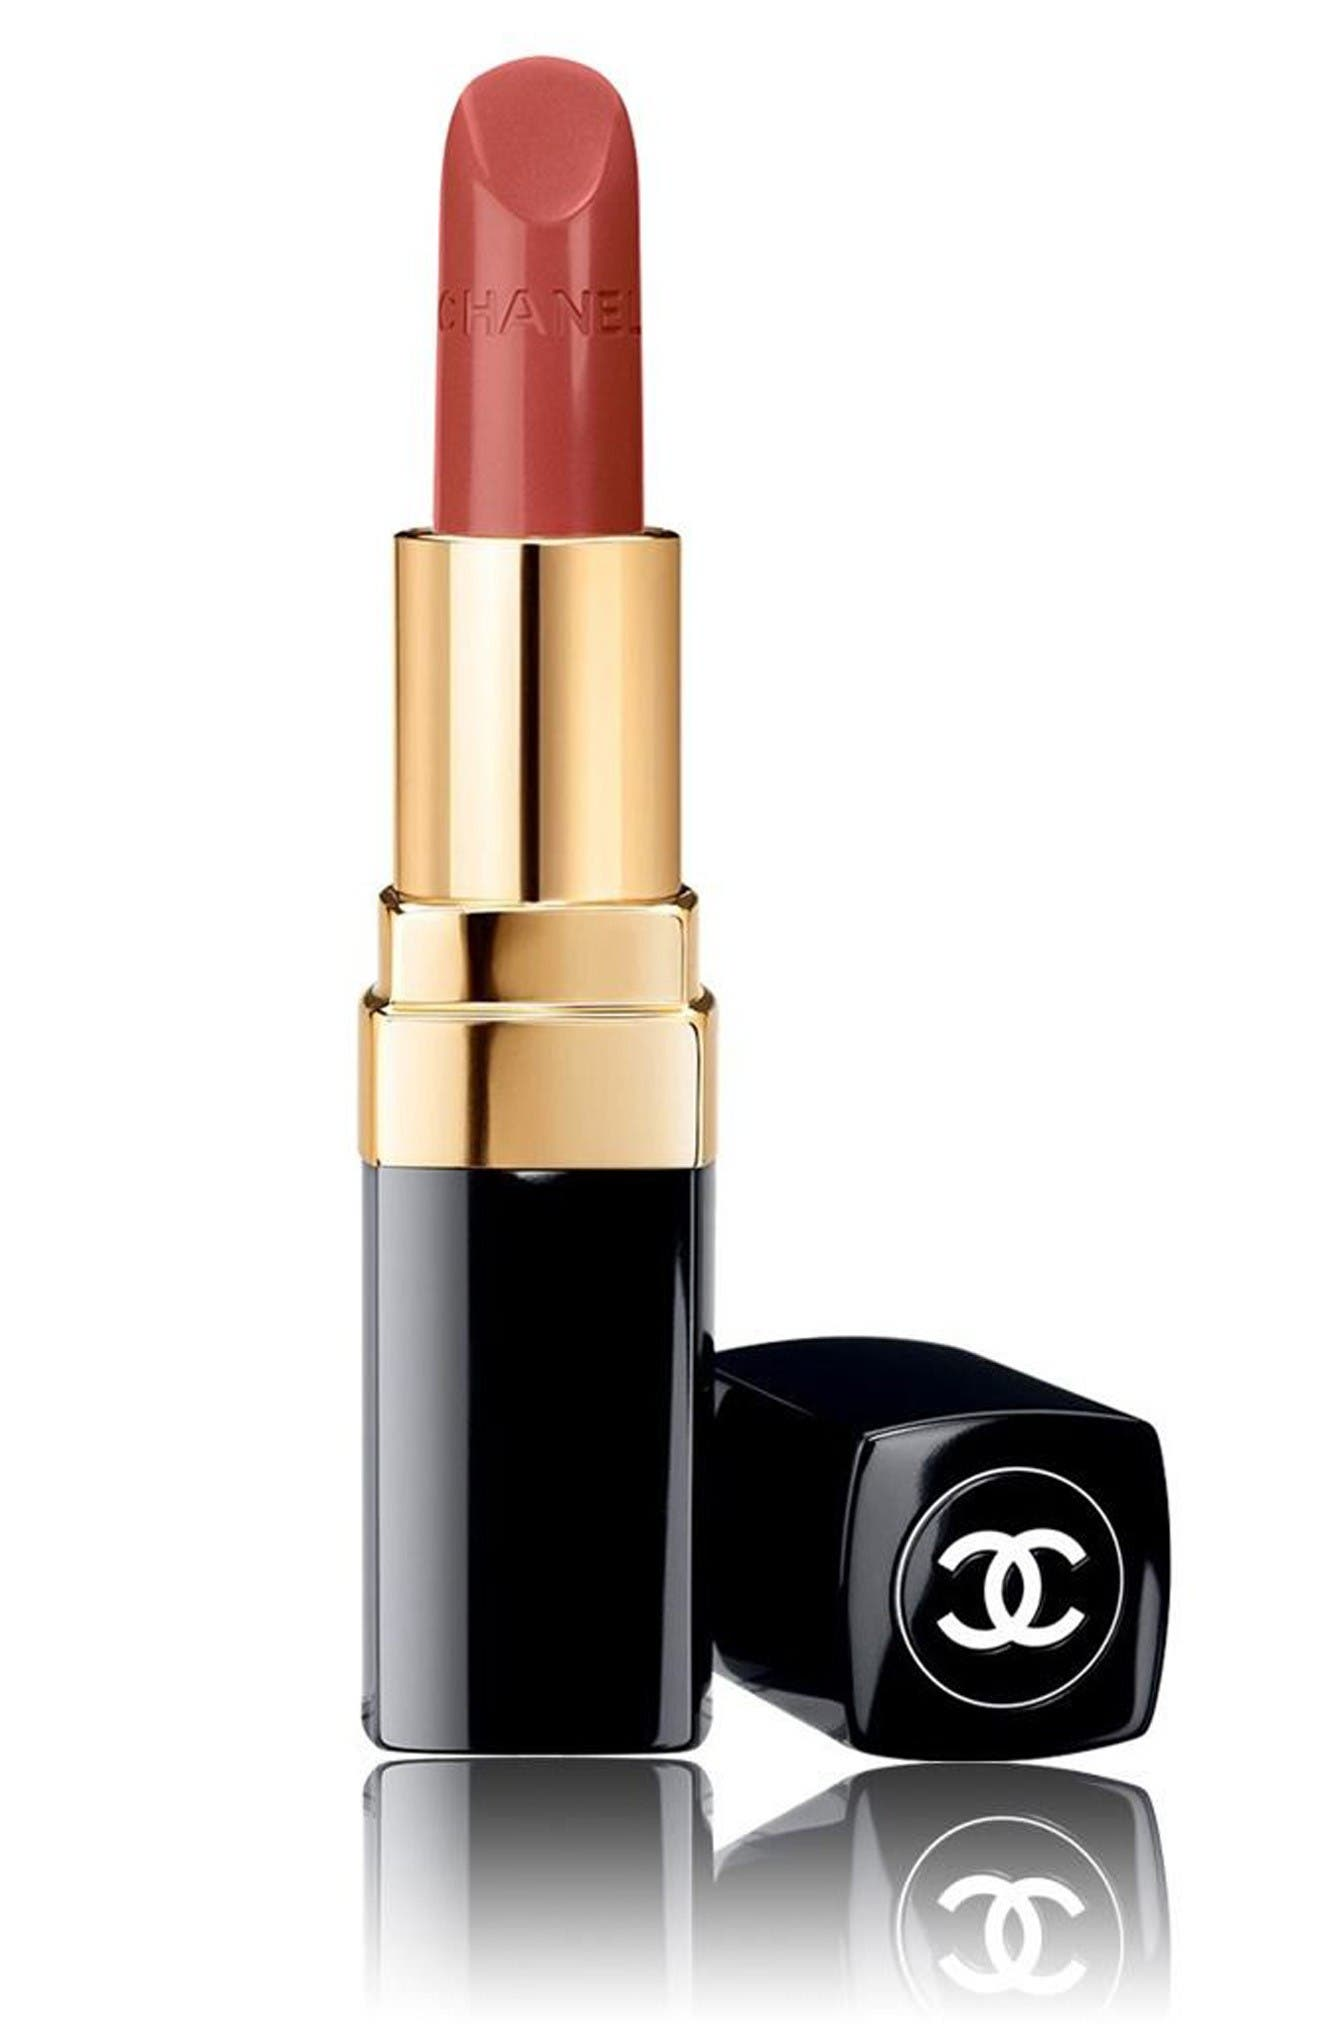 ROUGE COCO ULTRA HYDRATING LIP COLOUR Image